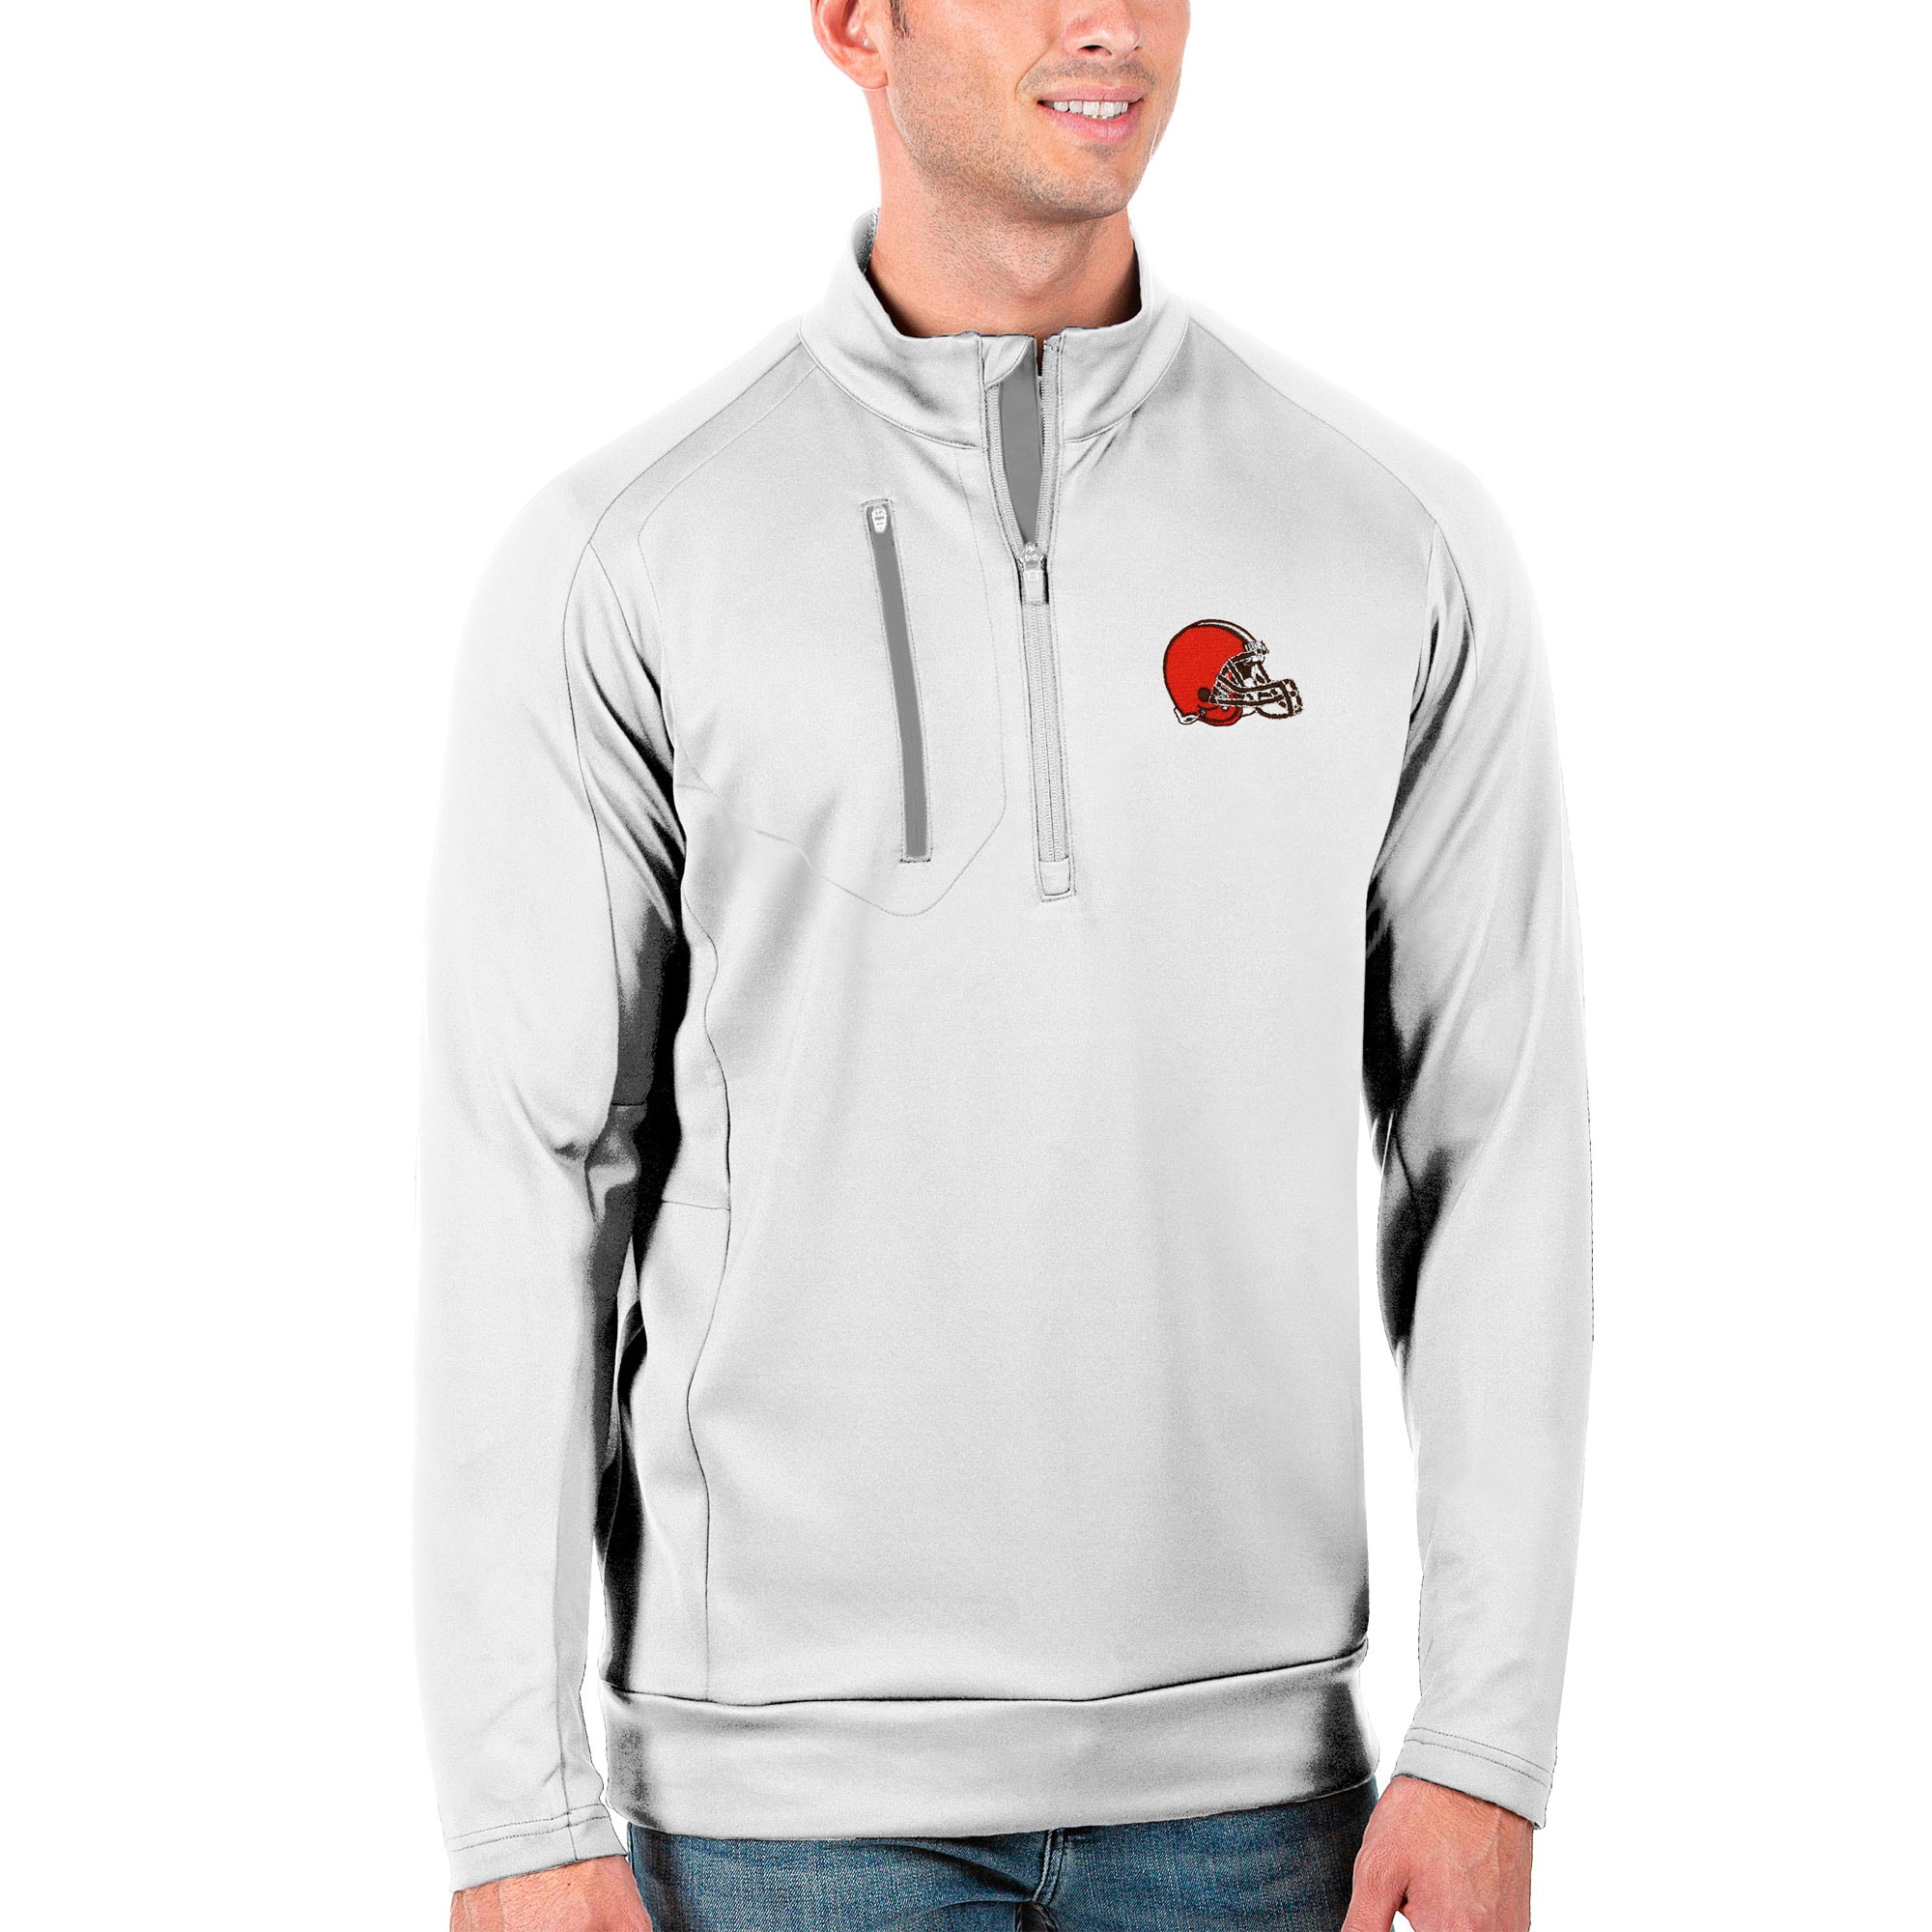 Cleveland Browns Antigua Generation Quarter-Zip Pullover Jacket - White/Silver